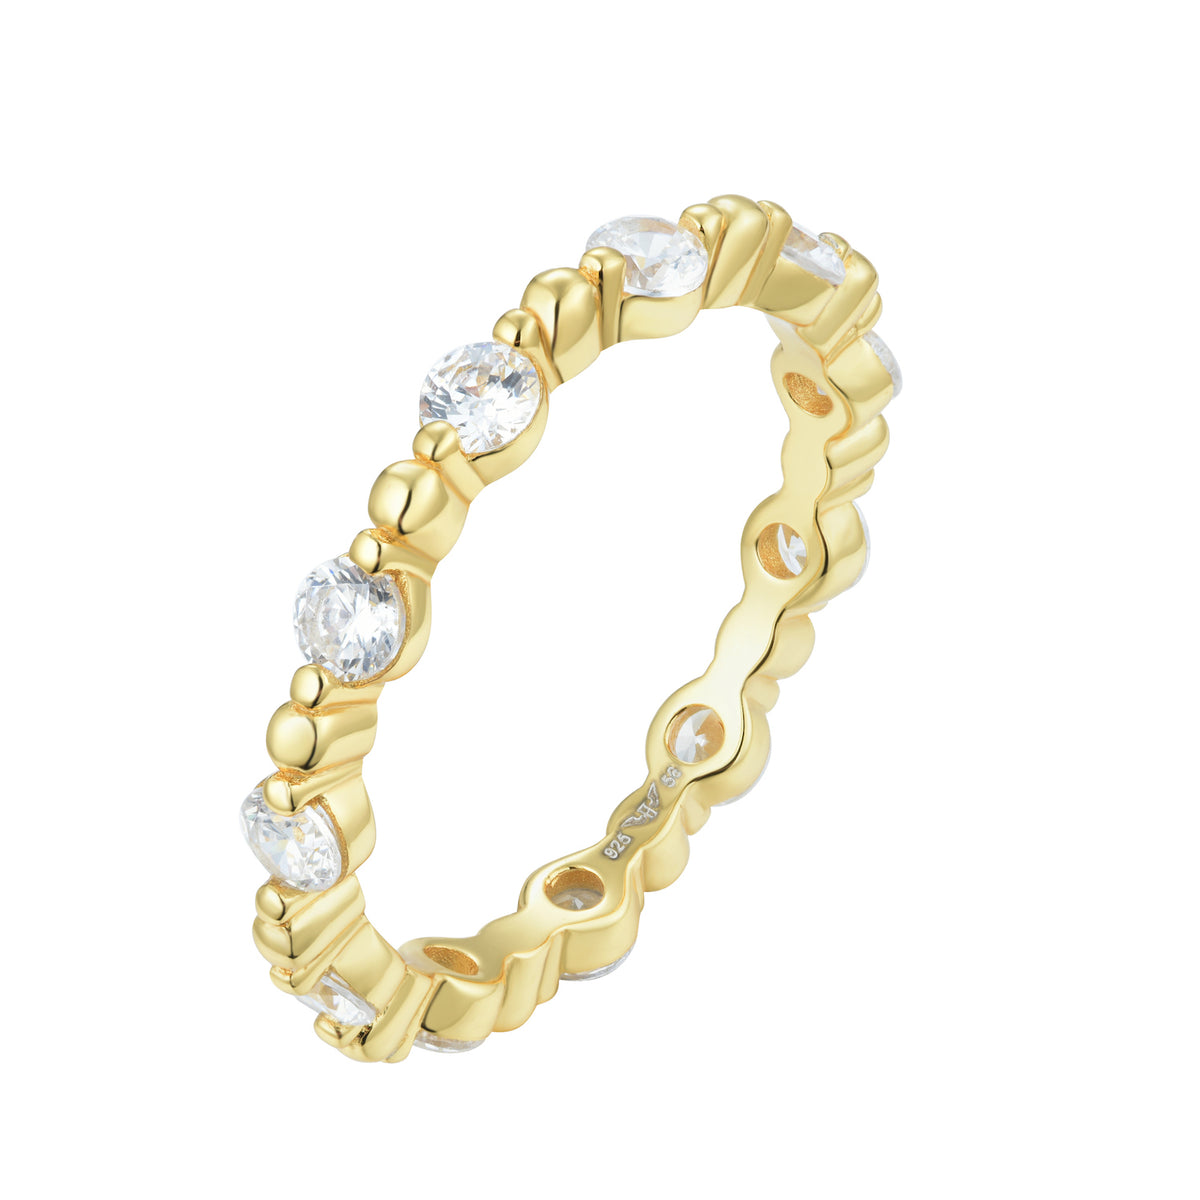 Fortuna | Ferrara Ring | 925 Silver | White CZ | 18K Gold Plated